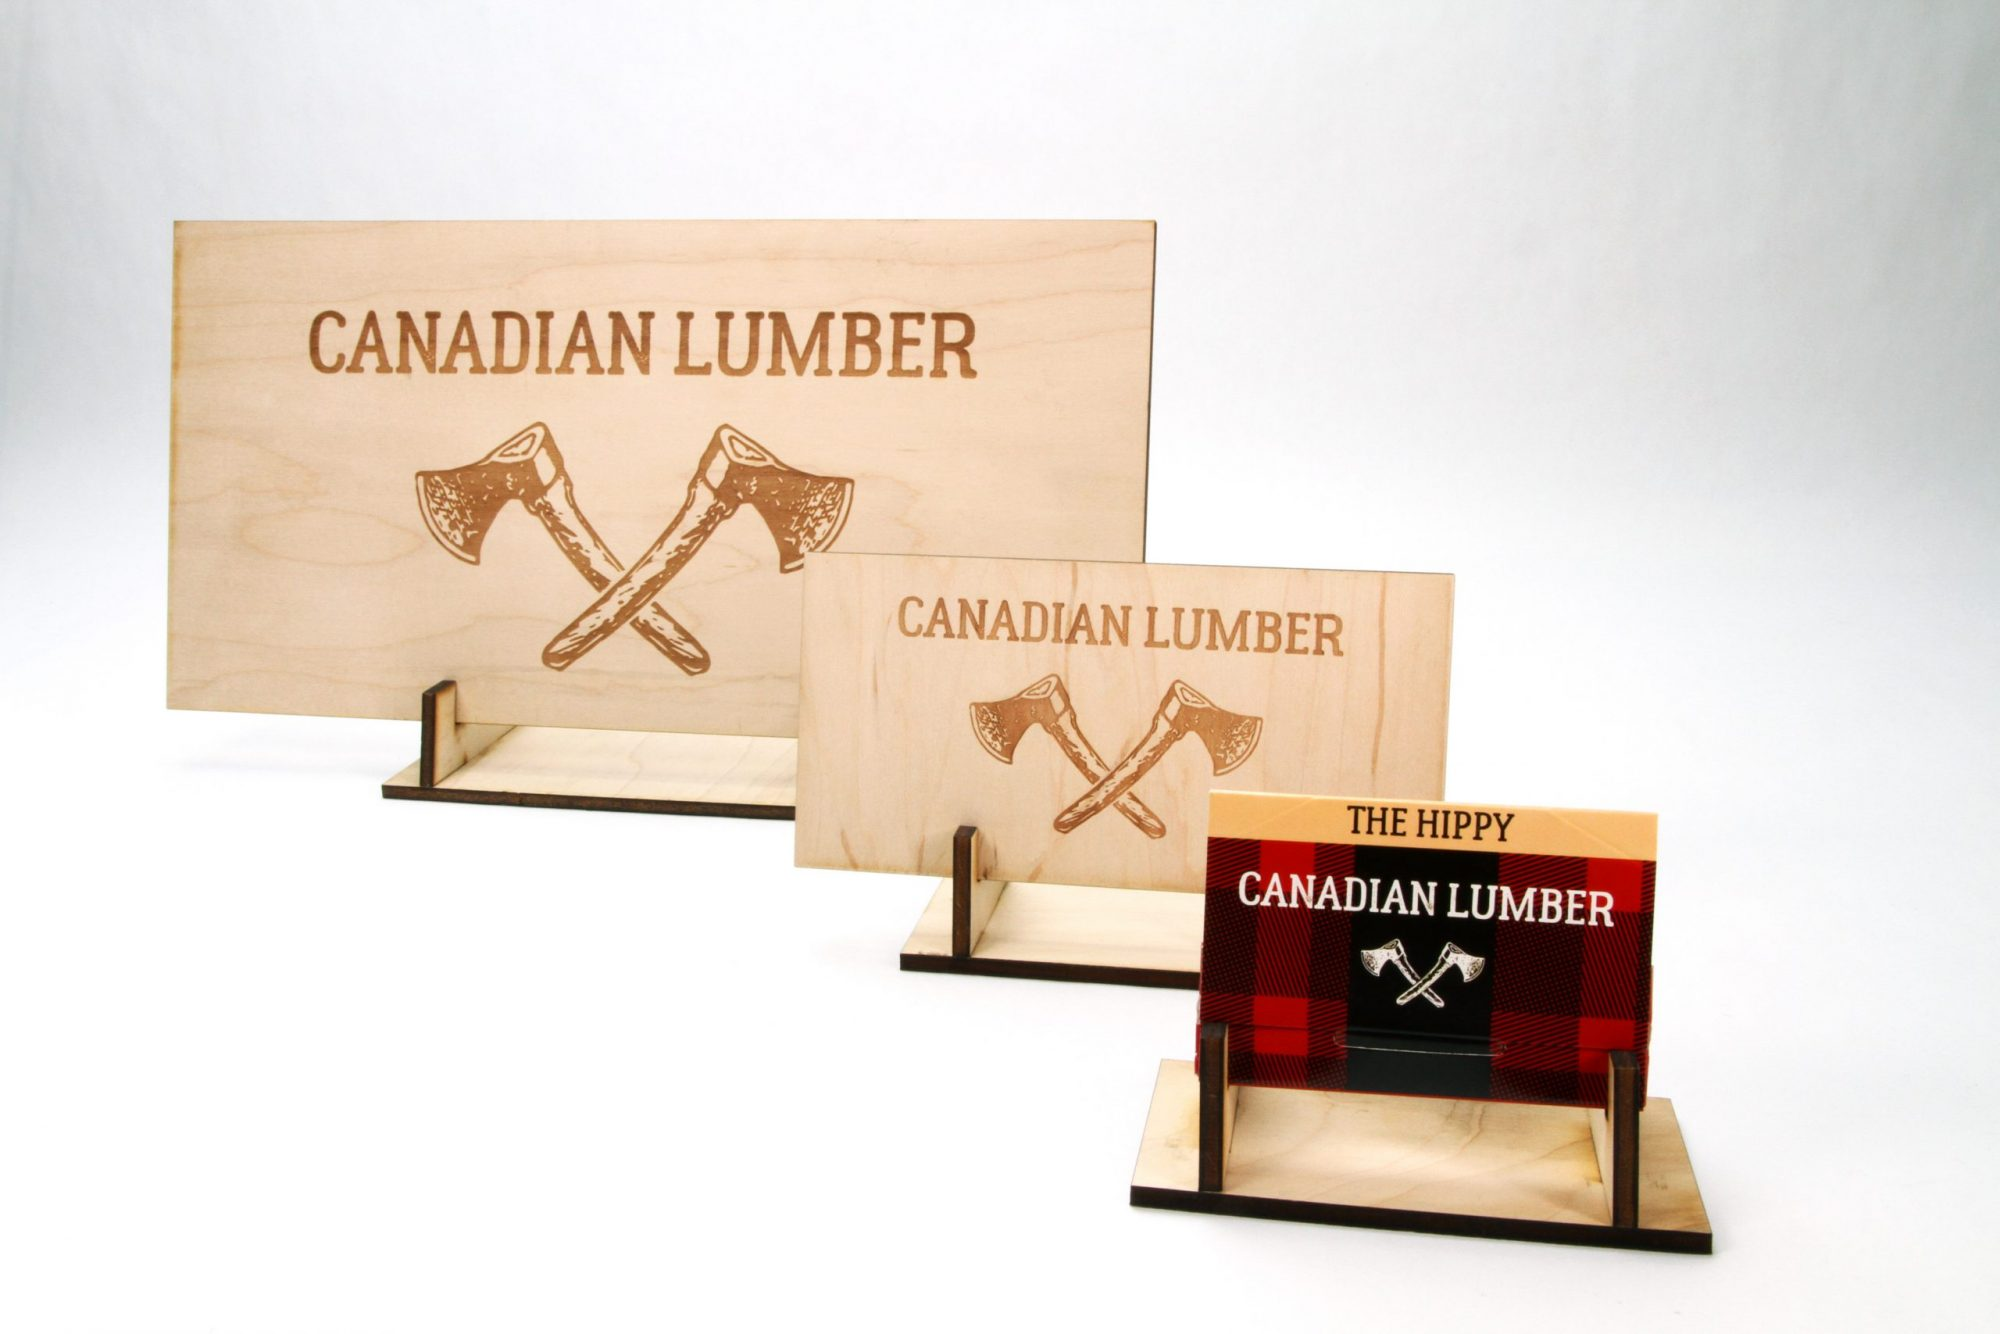 Canadian Lumber Ltd. laser-etched wooden sign with emblazoned double ax logo, Canada's top cannabis accessory brand